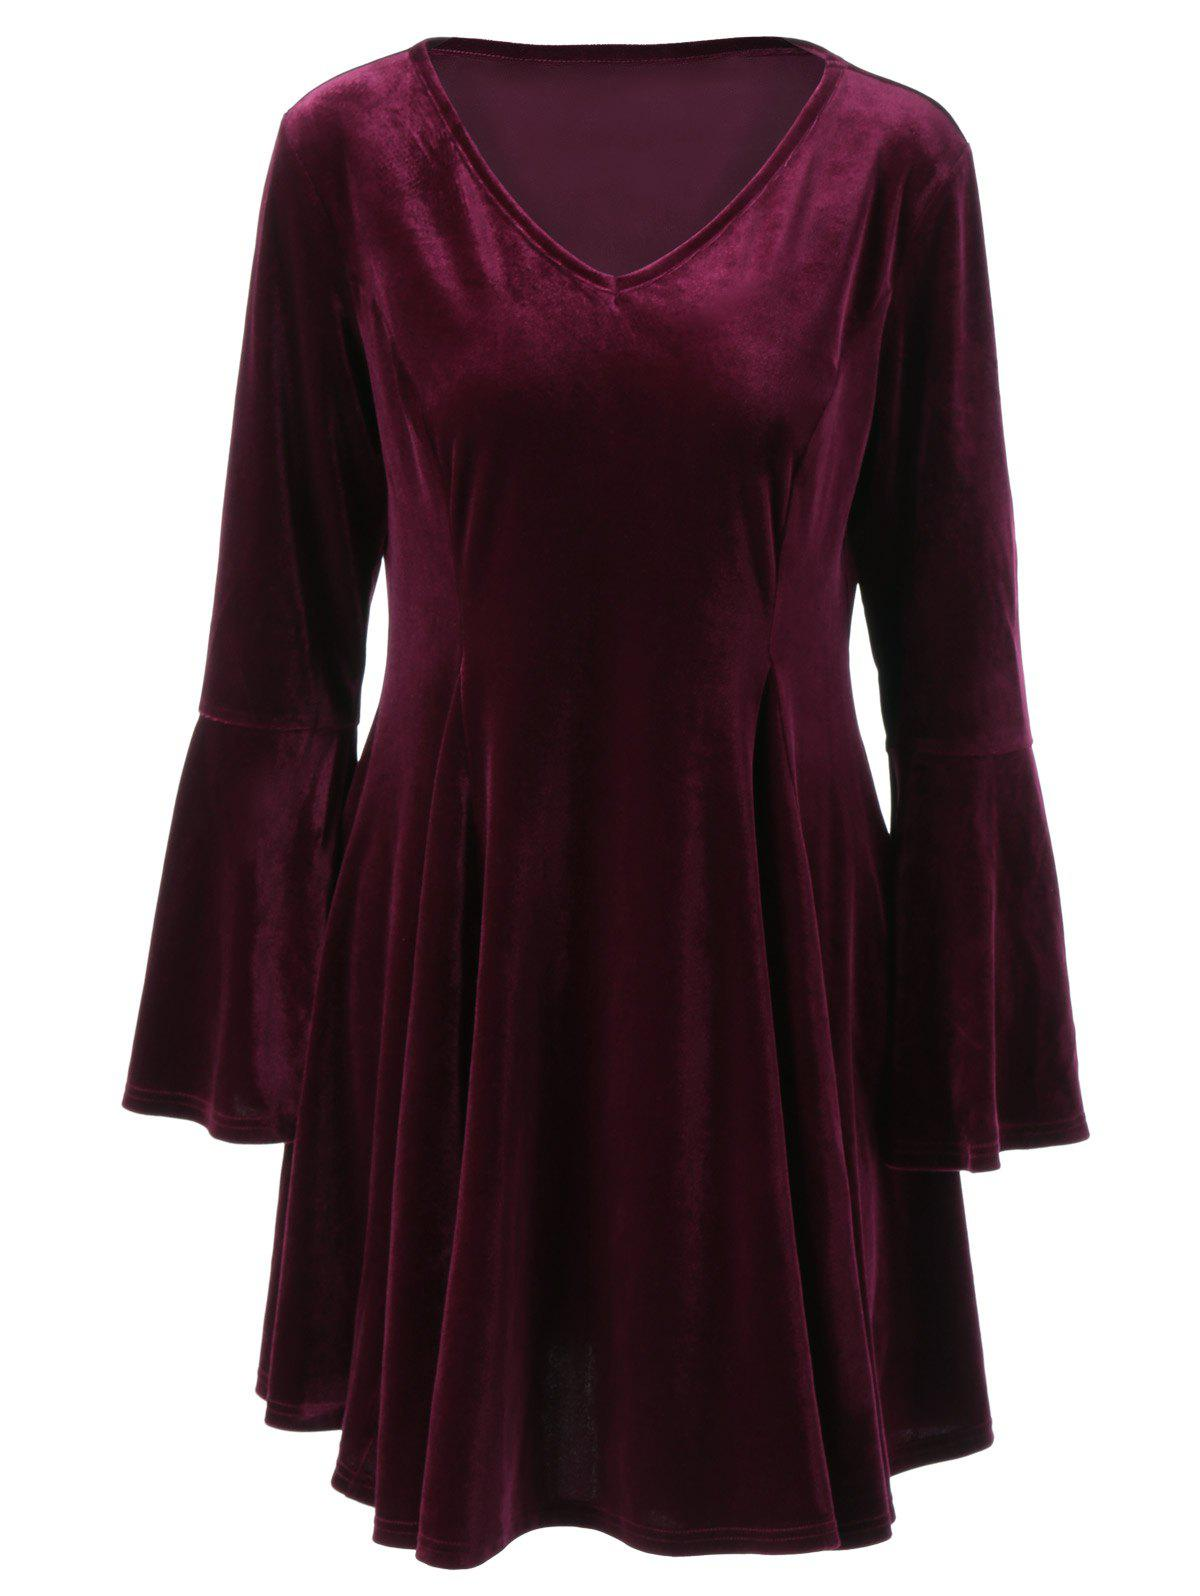 Flare Long Sleeve Velvet Skater Cocktail Dress - PURPLE RED XL